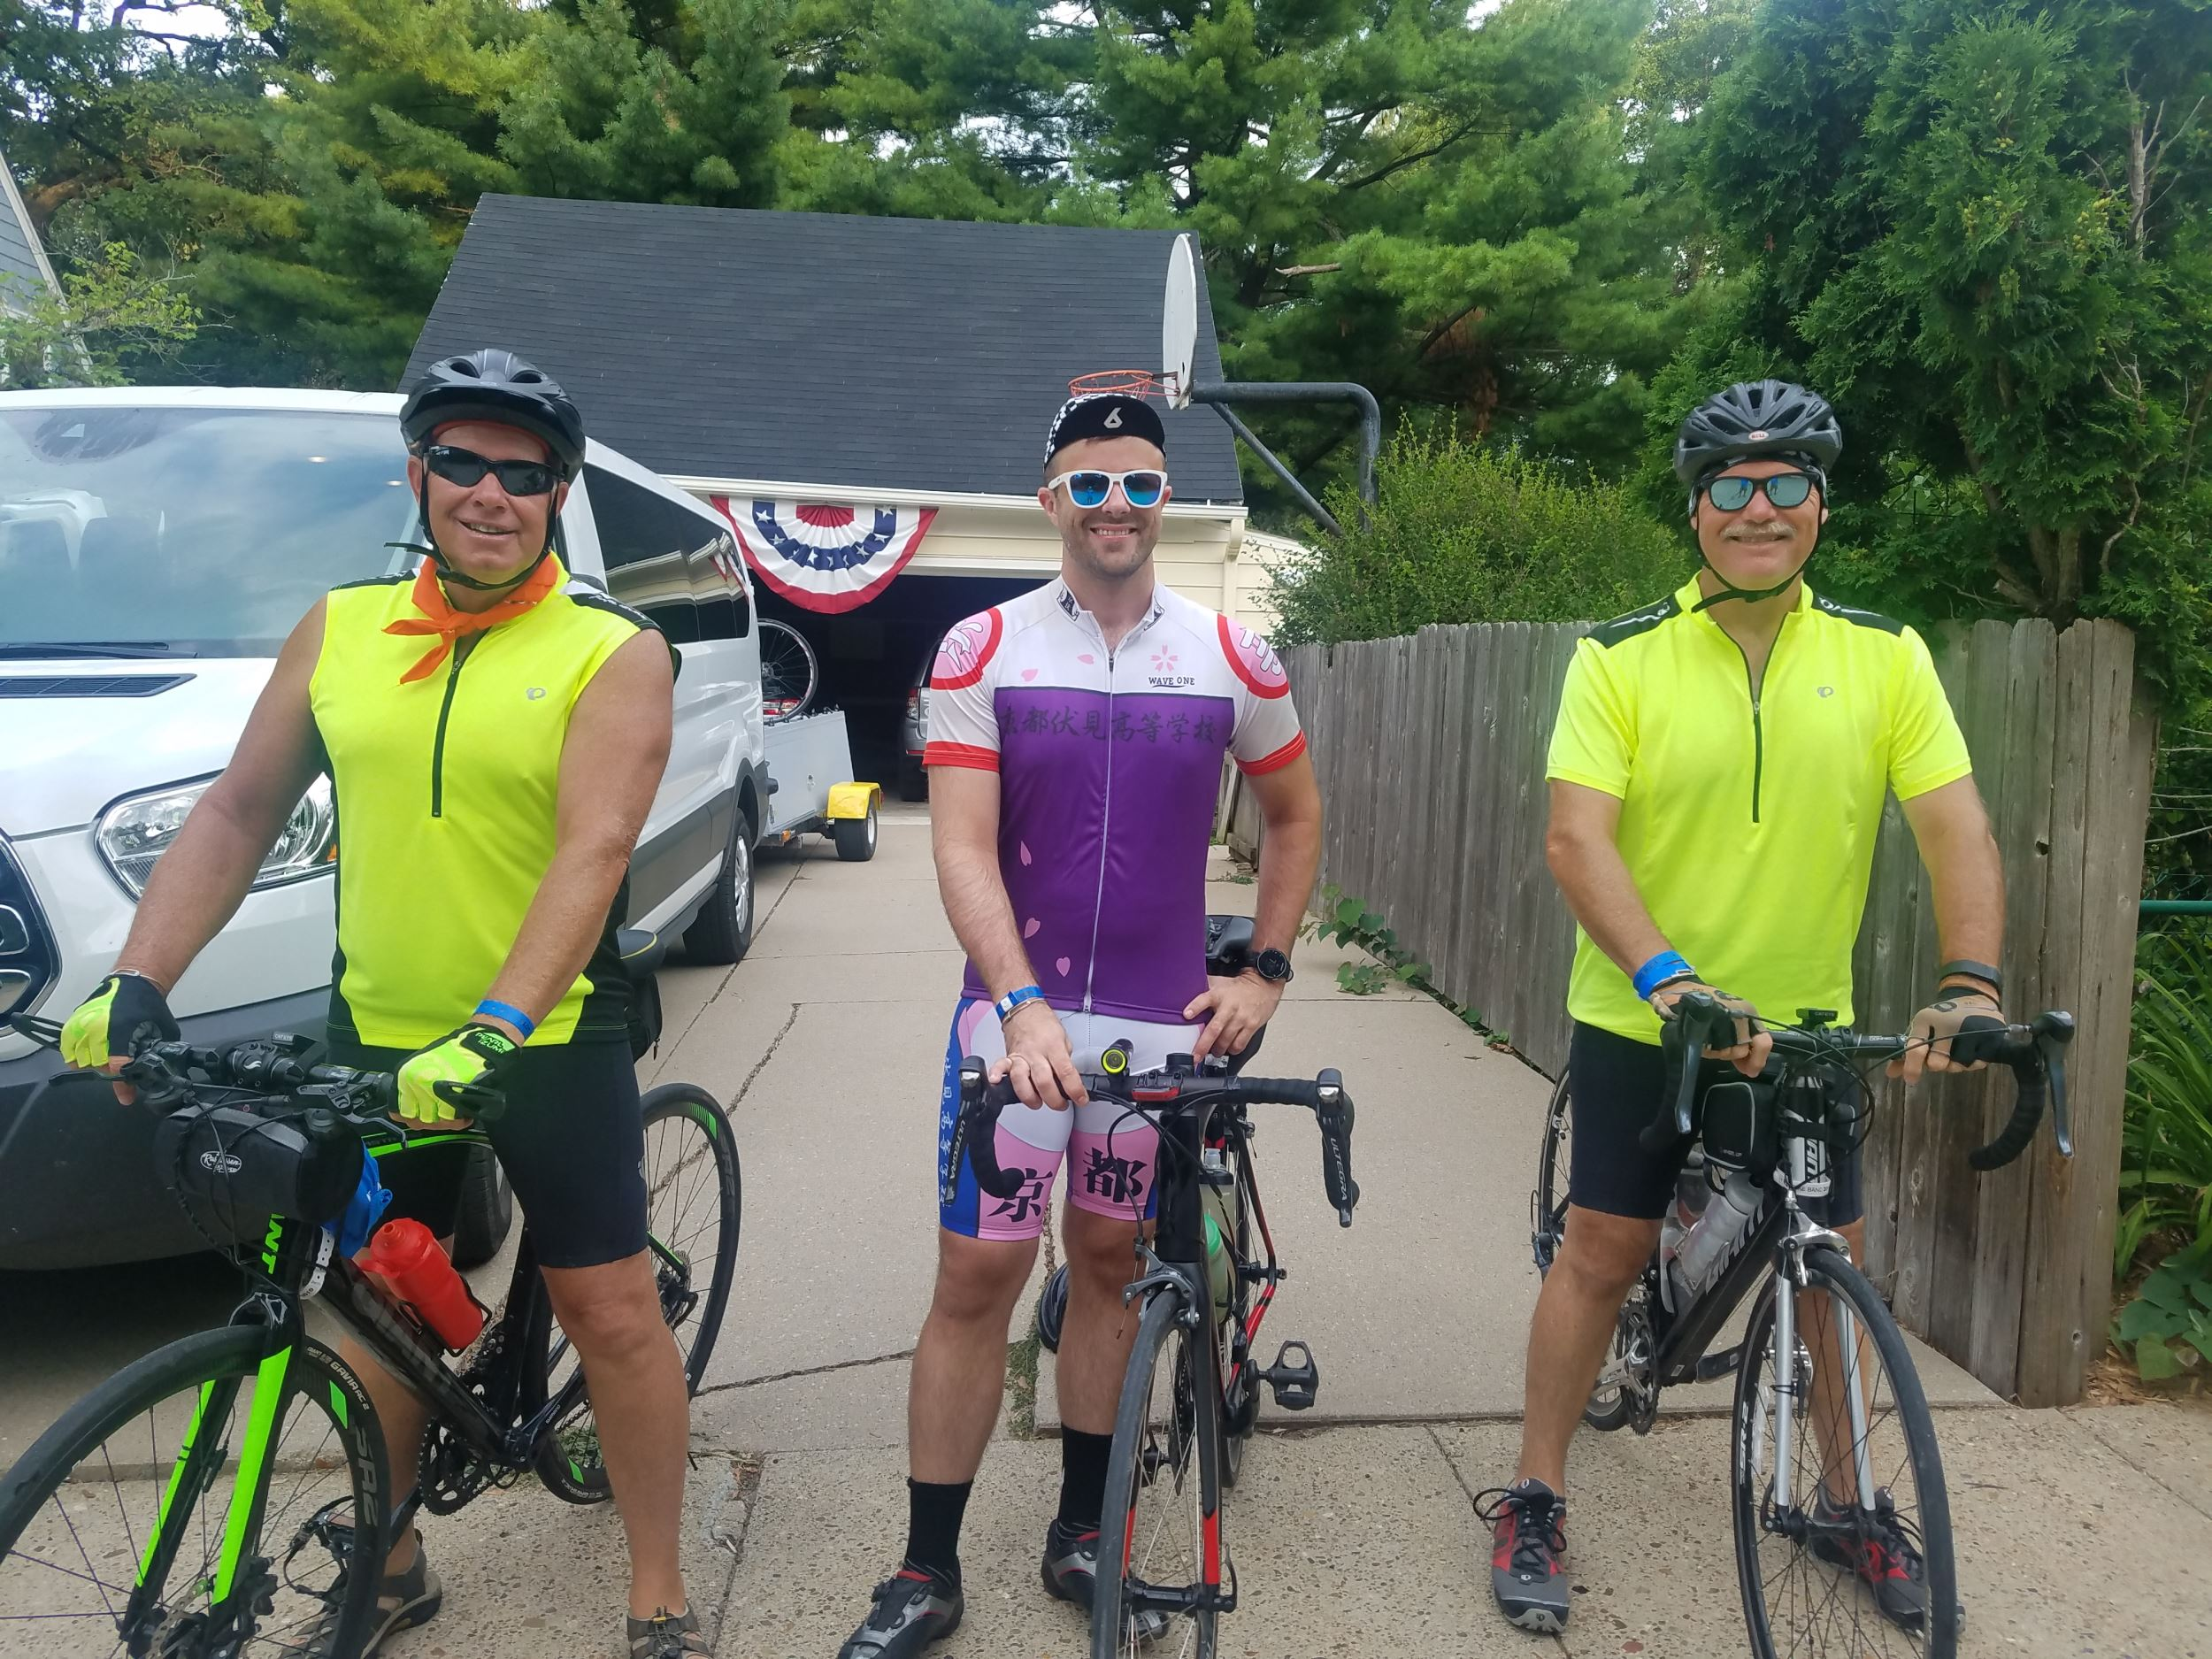 A journey from cardiac arrest to RAGBRAI